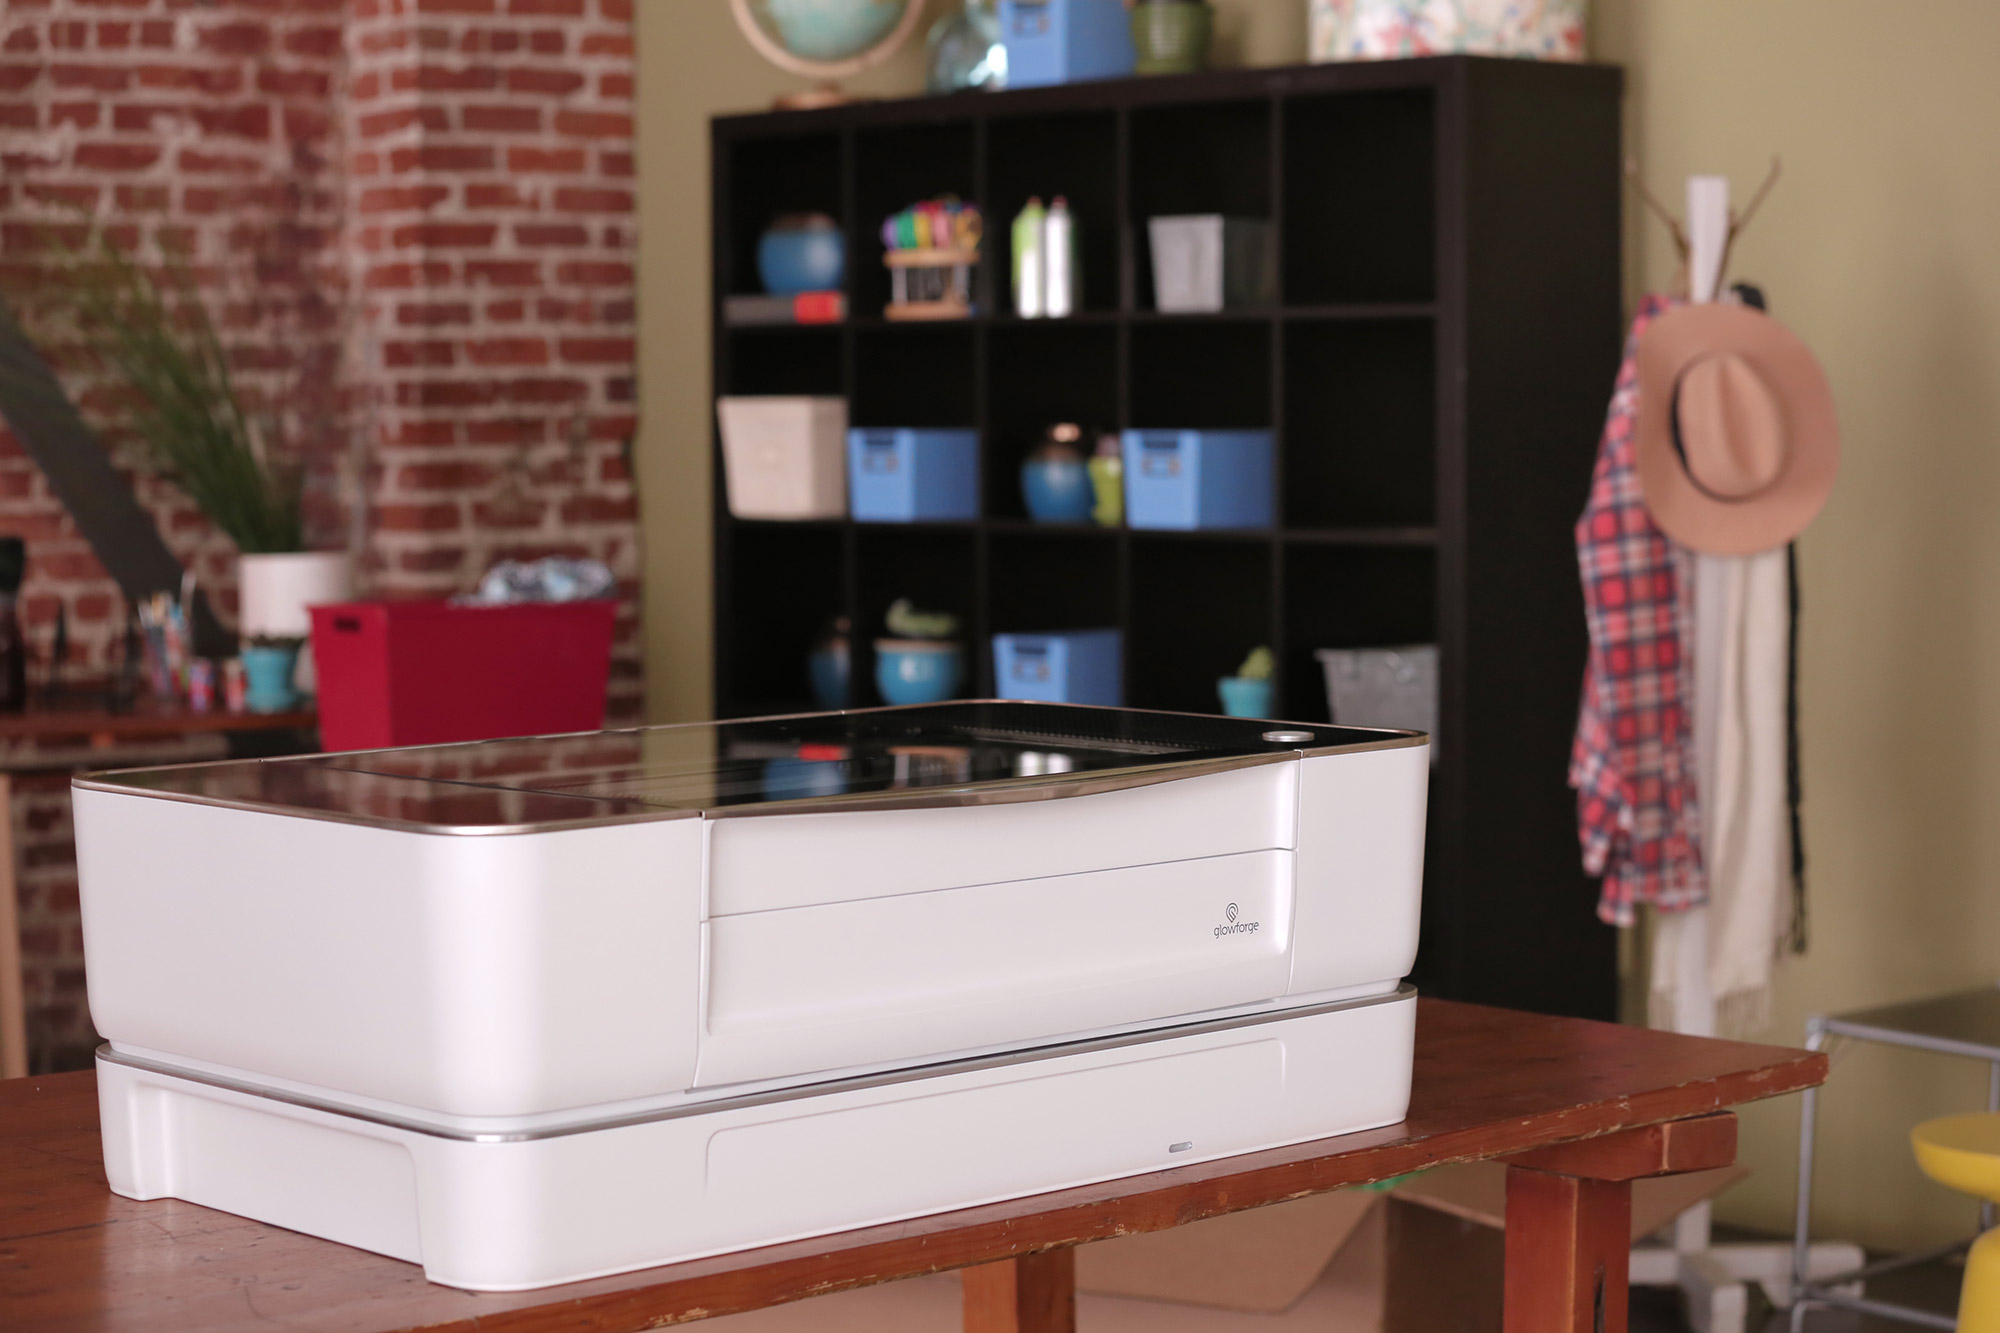 Glowforge Brings 3D Laser Printing to the Home User